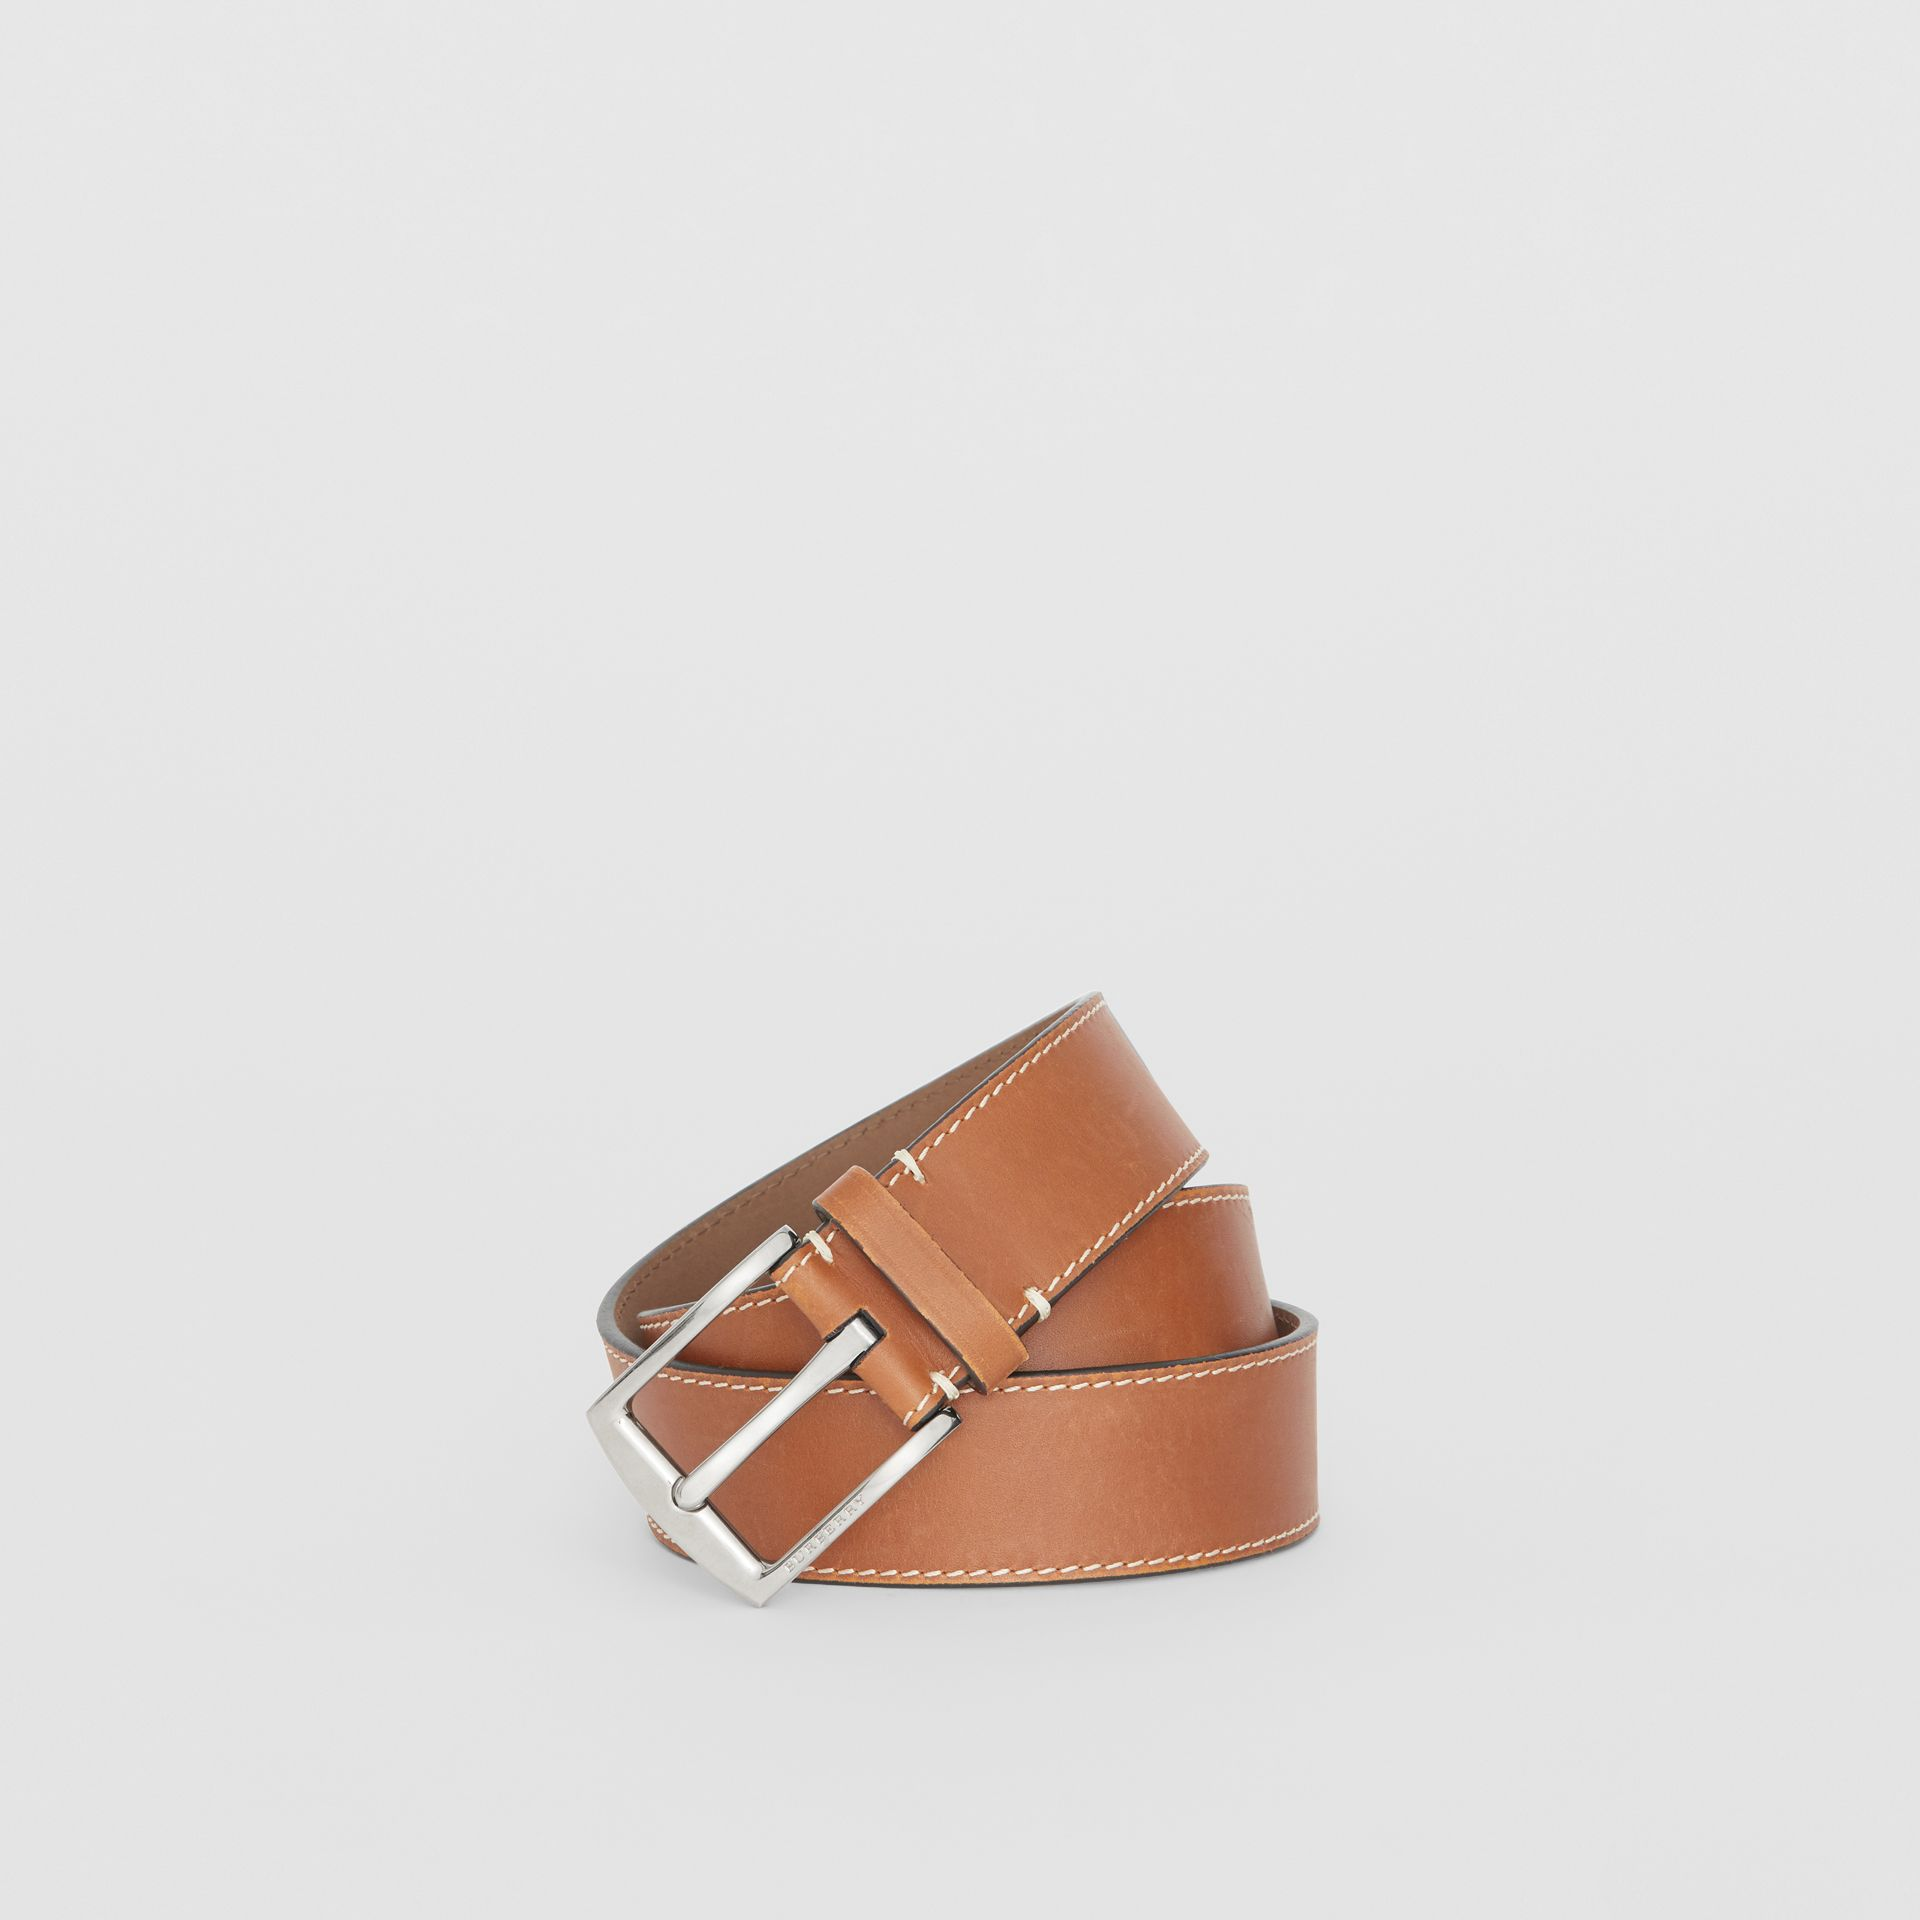 Topstitched Leather Belt in Tan - Men | Burberry United States - gallery image 0